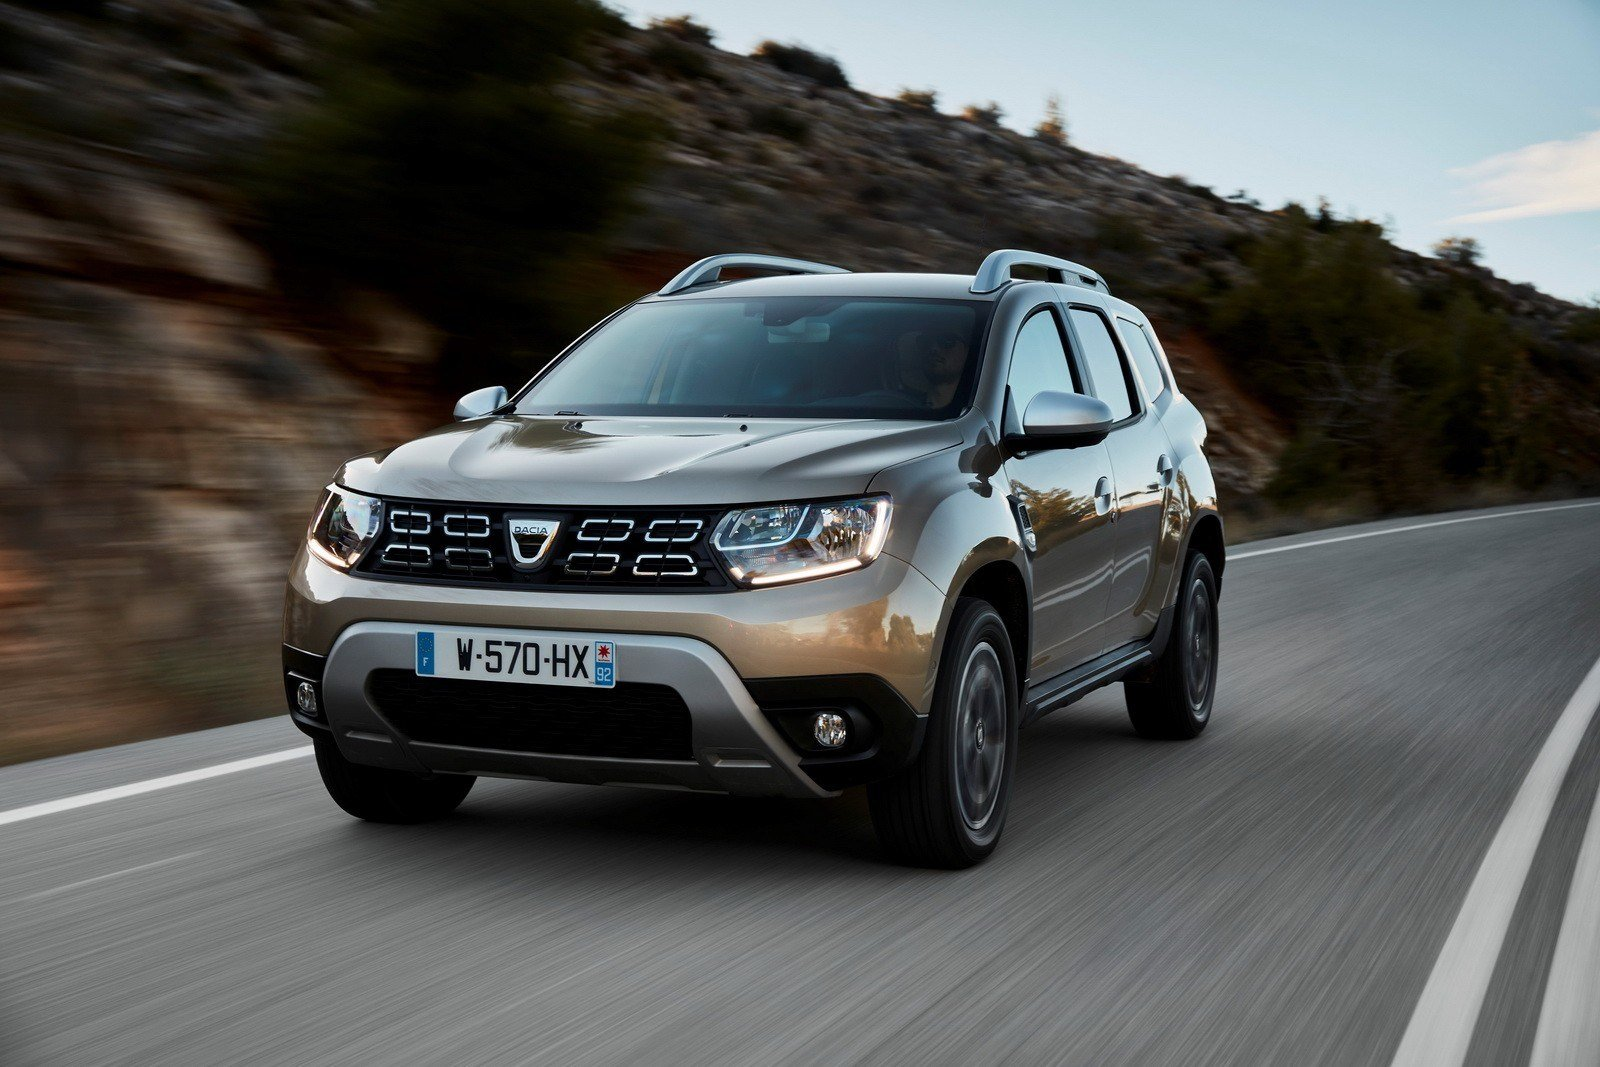 New 2018 Dacia Duster Detailed In New Photos And Videos On This Month